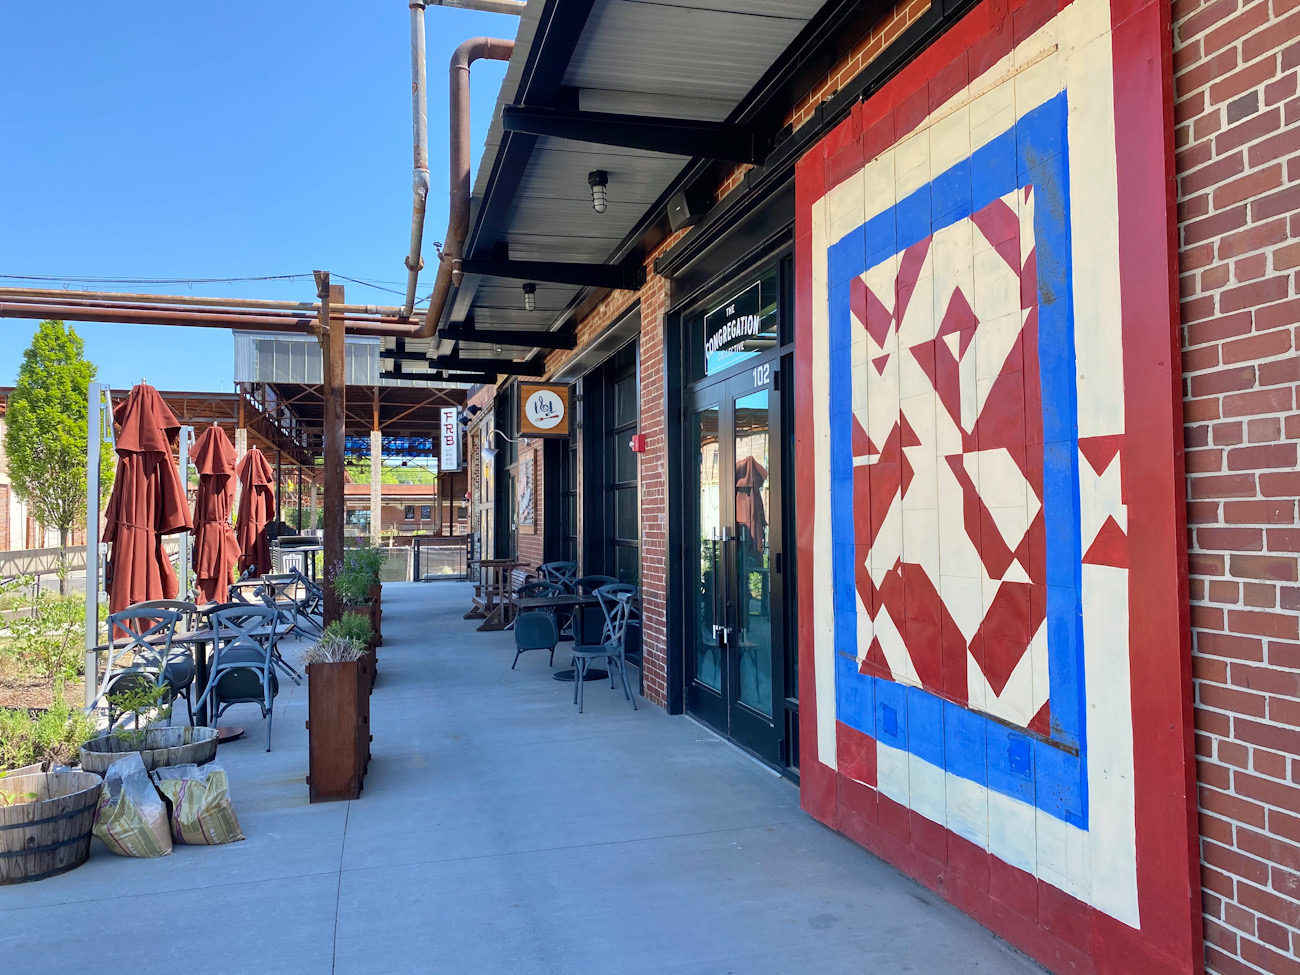 Your guide to 30+ murals in Camp North End